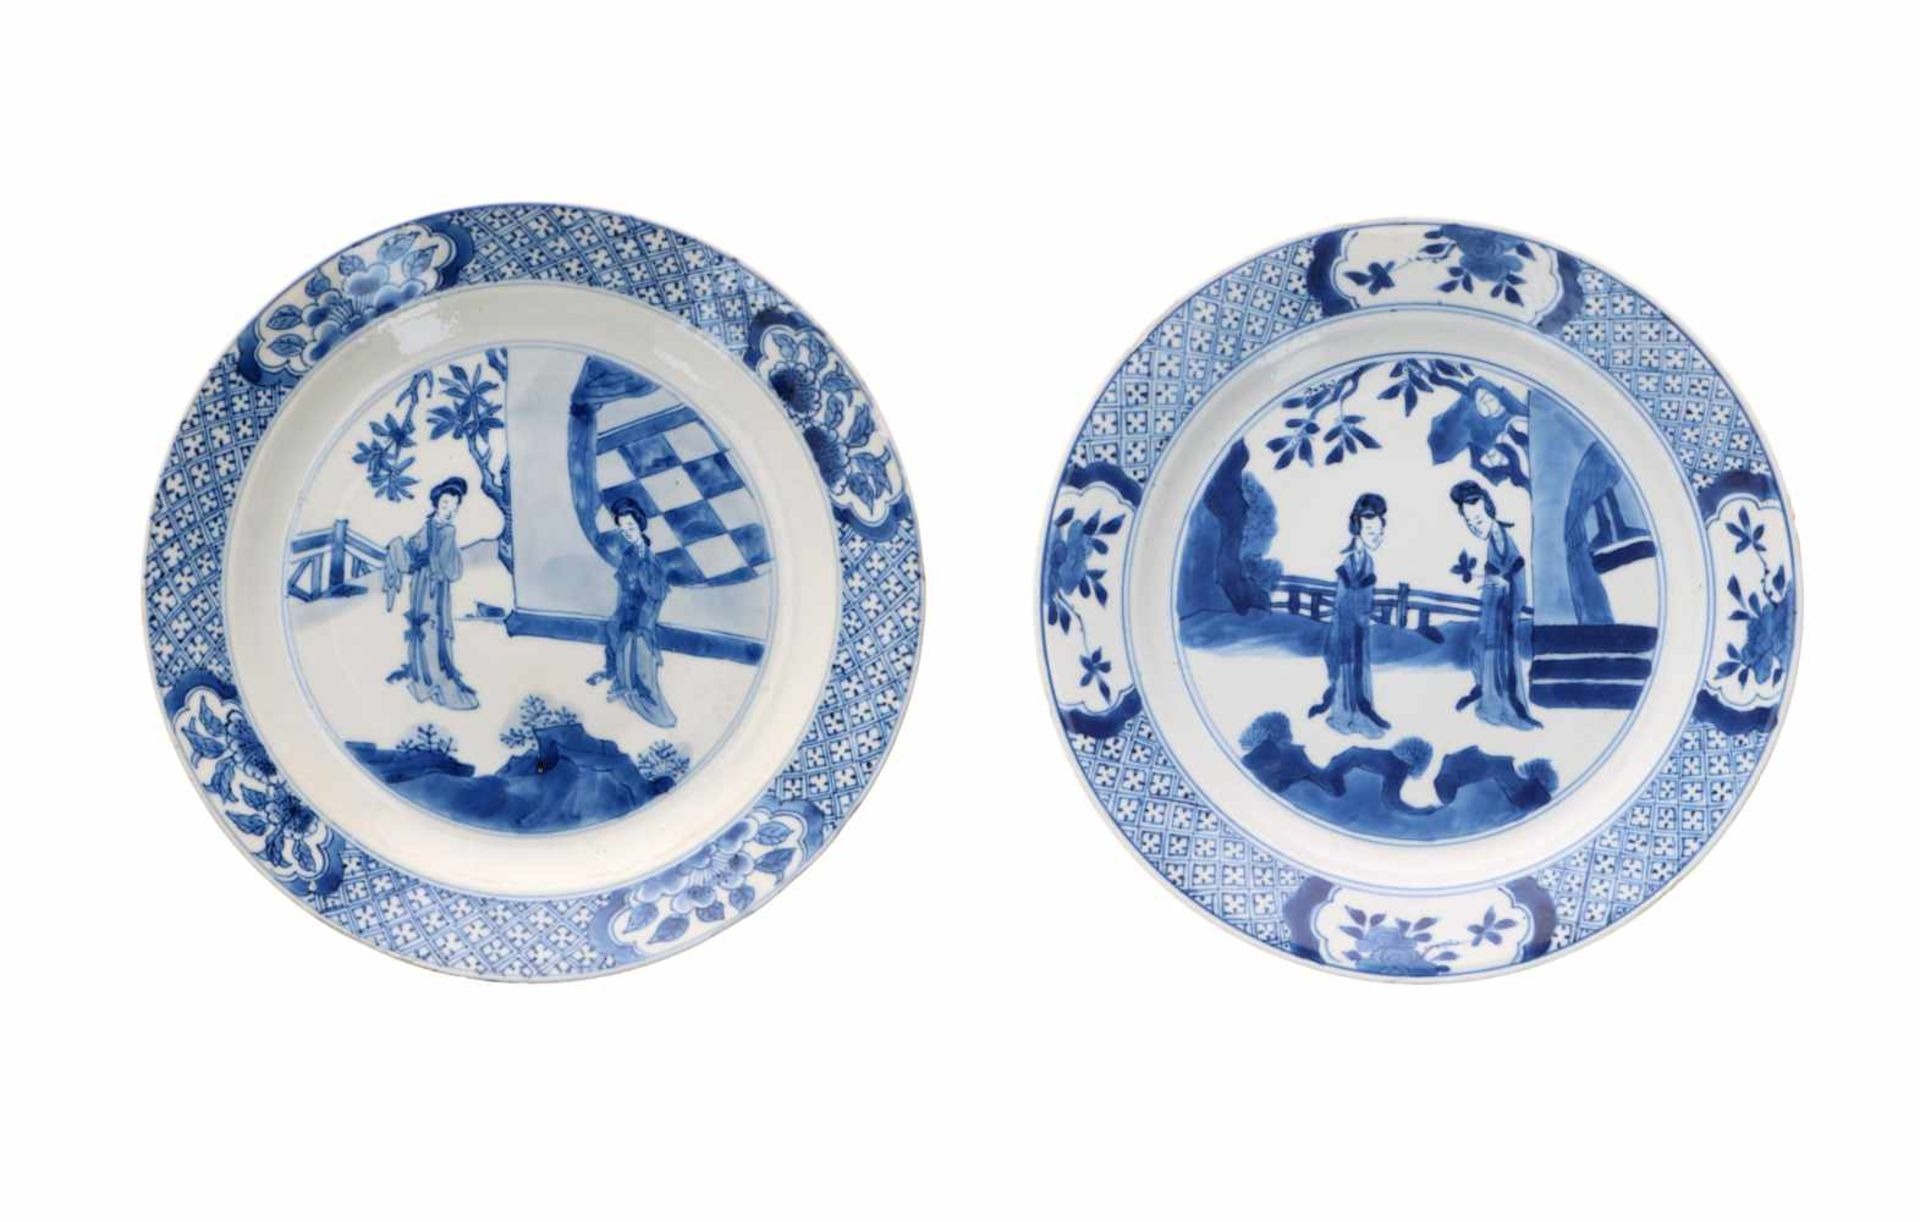 Lot of two blue and white porcelain dishes, decorated with long Elizas. Marked with 6-character